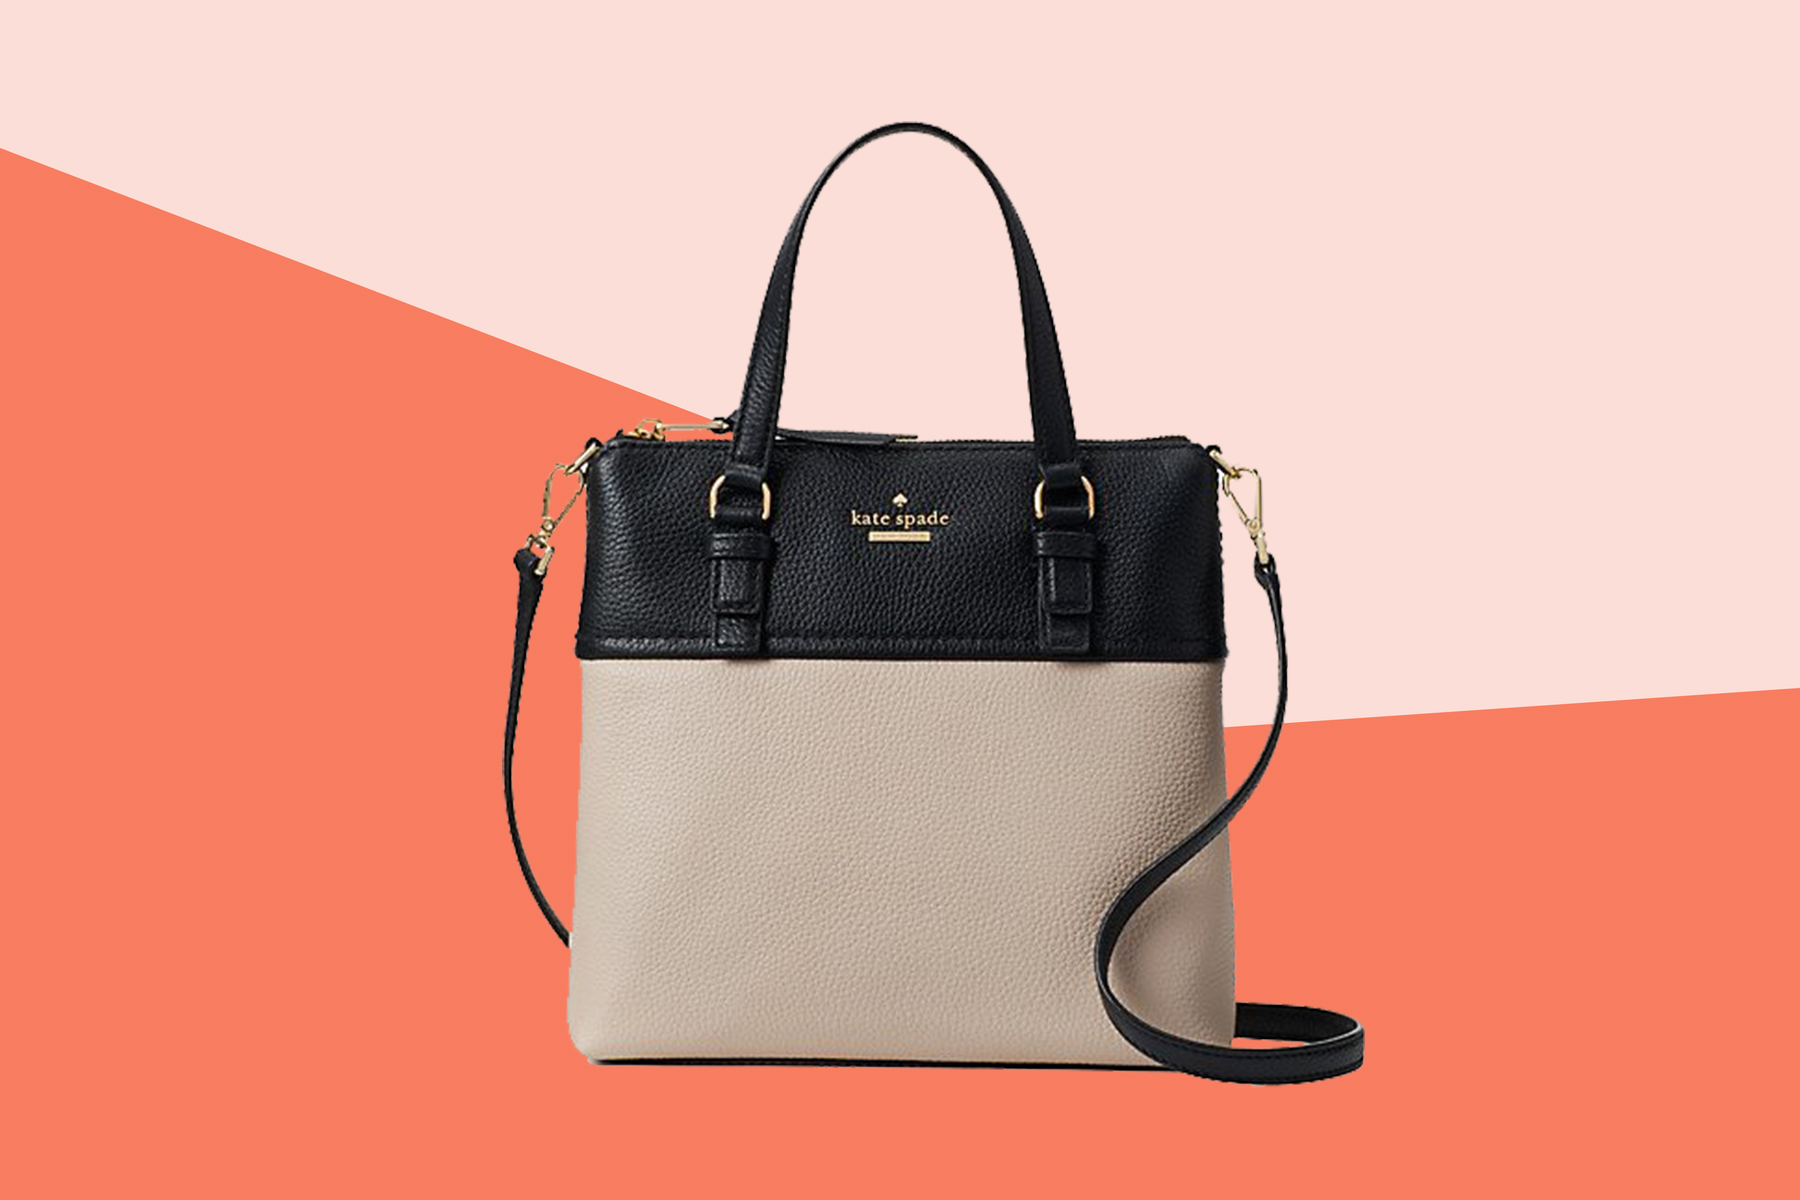 Kate Spade Deal of the Day